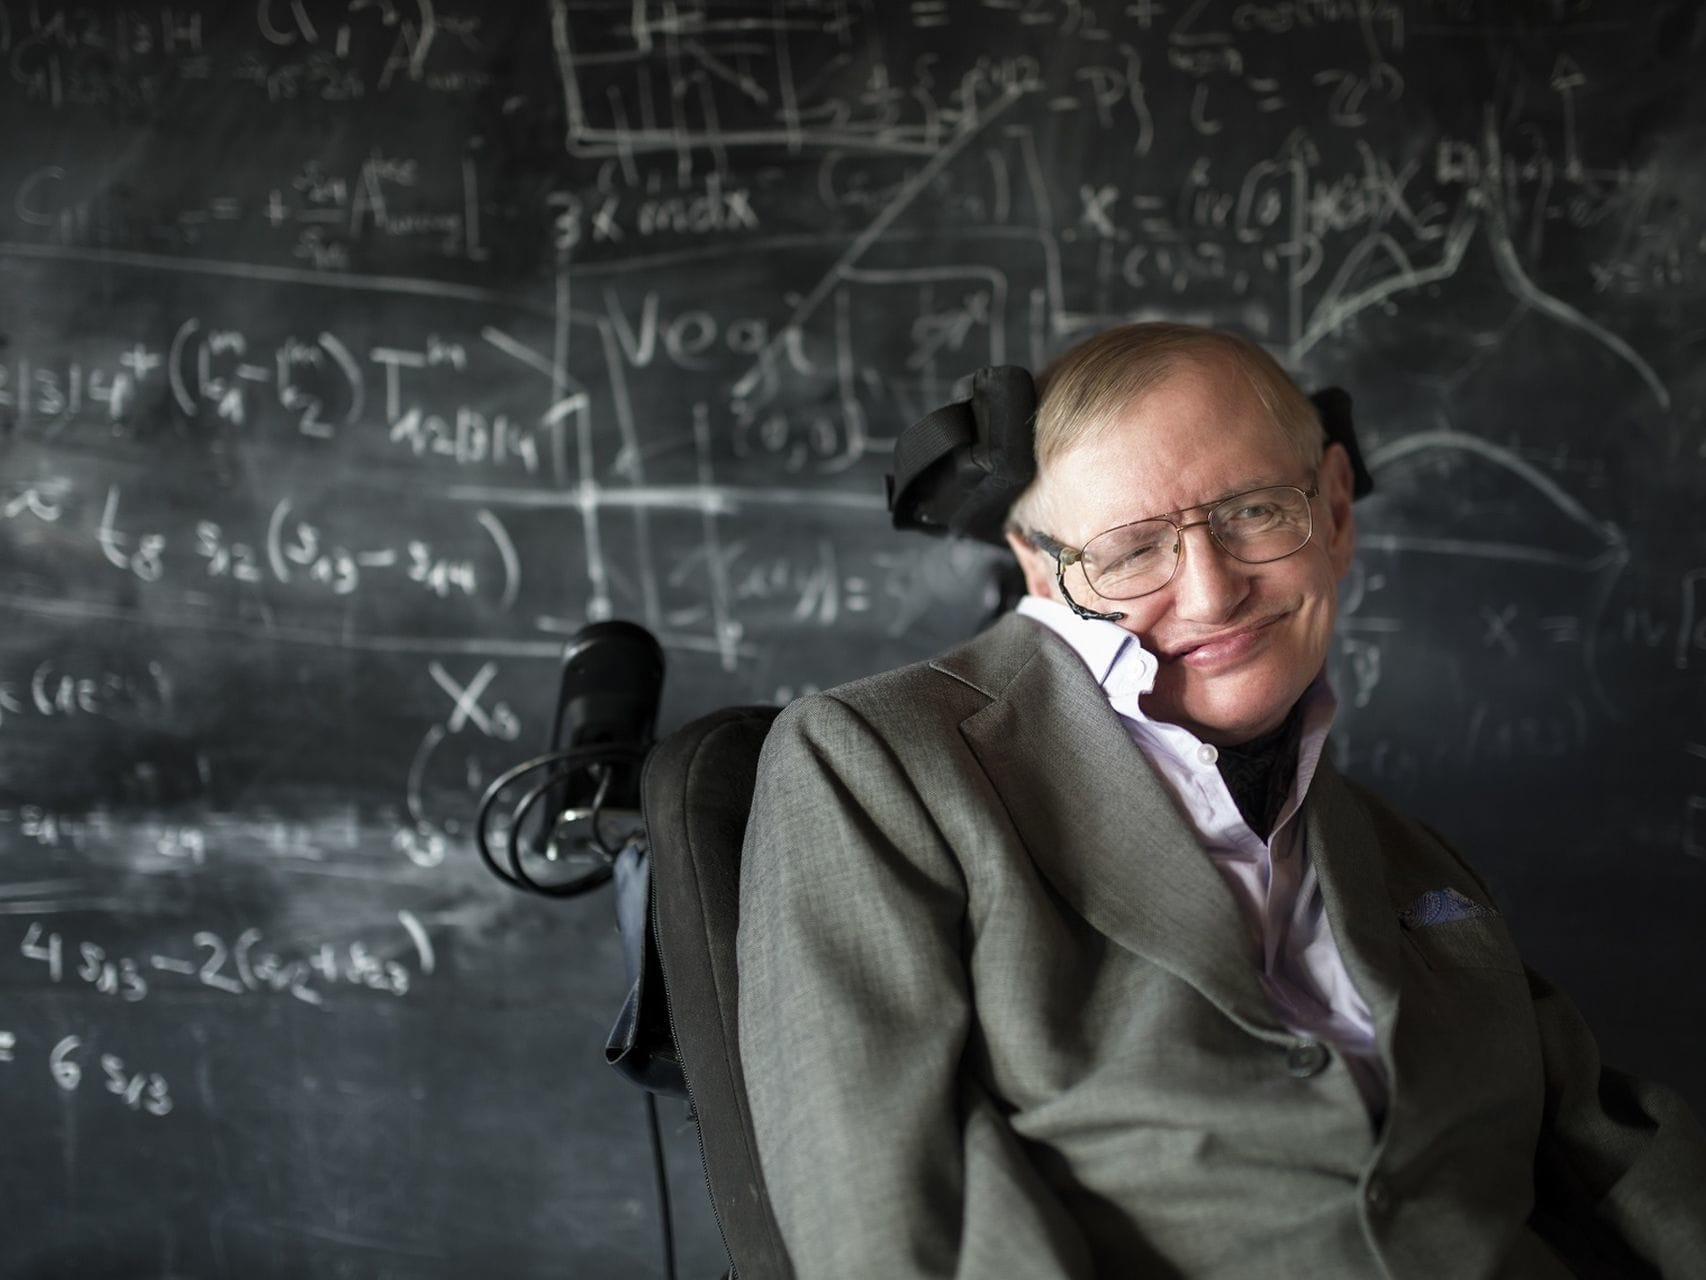 Top 10 Smartest People 2017: 10. Stephen Hawking